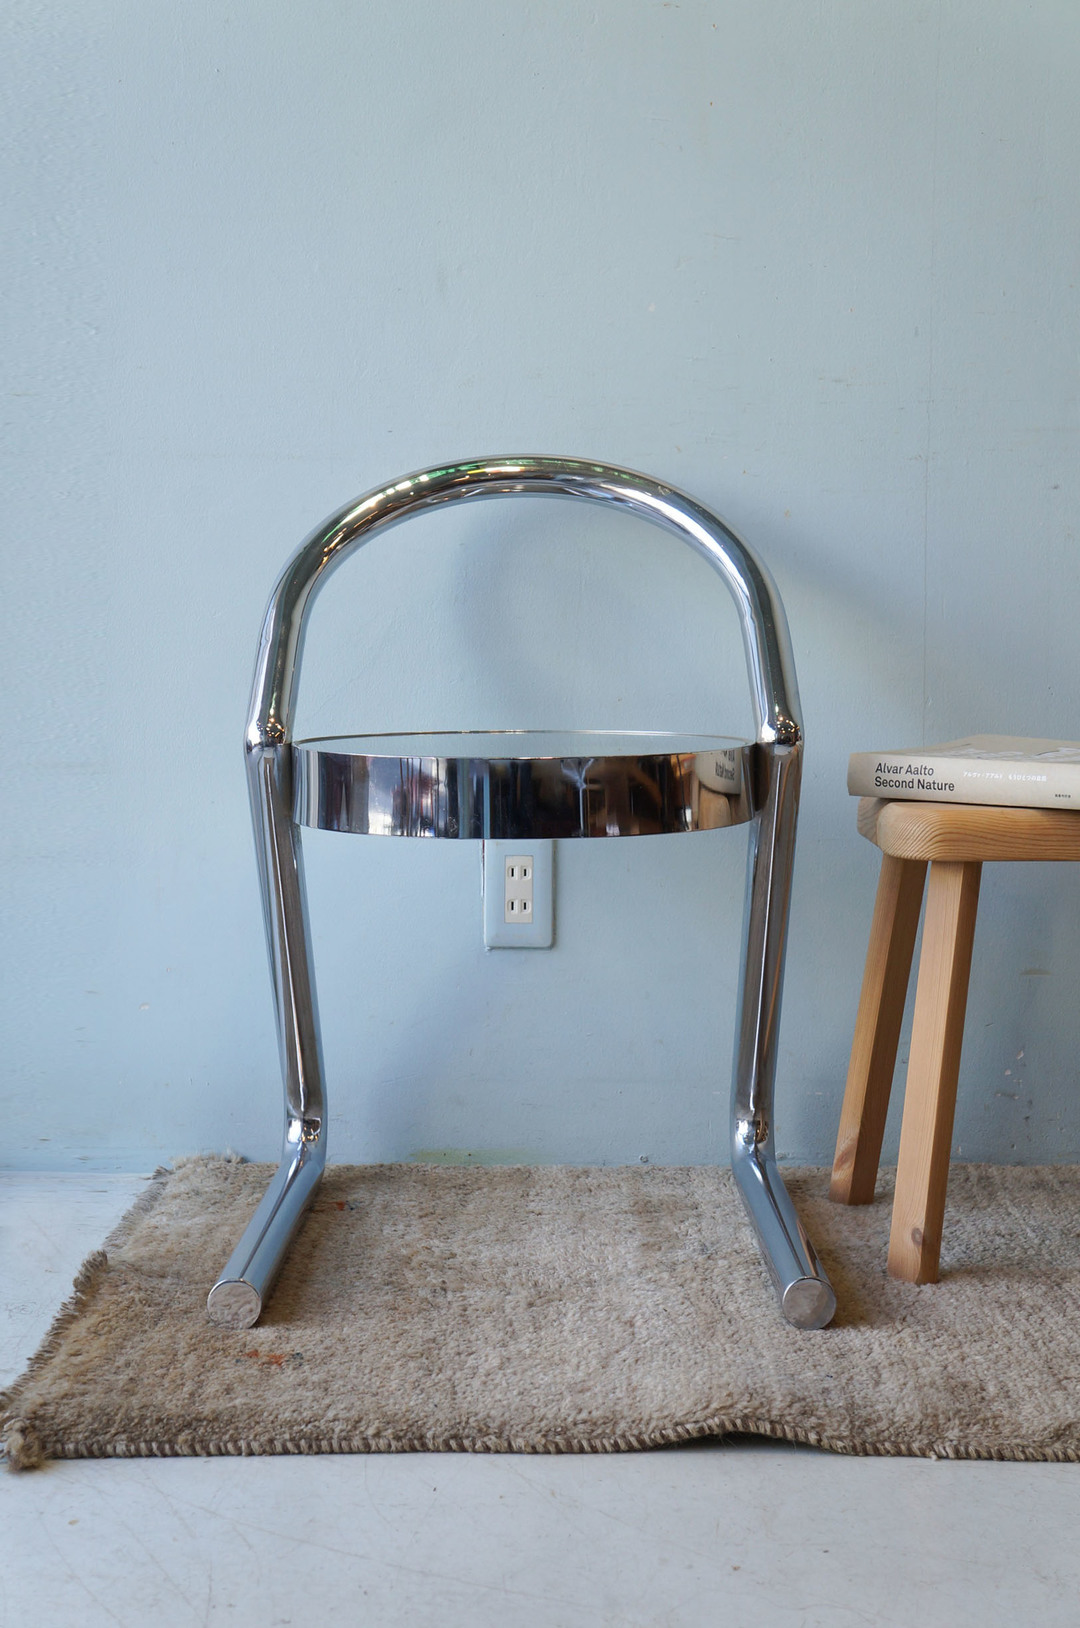 Post Modern Style Glass Chrome Chair/ガラストップチェア 椅子 ポストモダン イタリアンモダン ミッドセンチュリーモダン 2